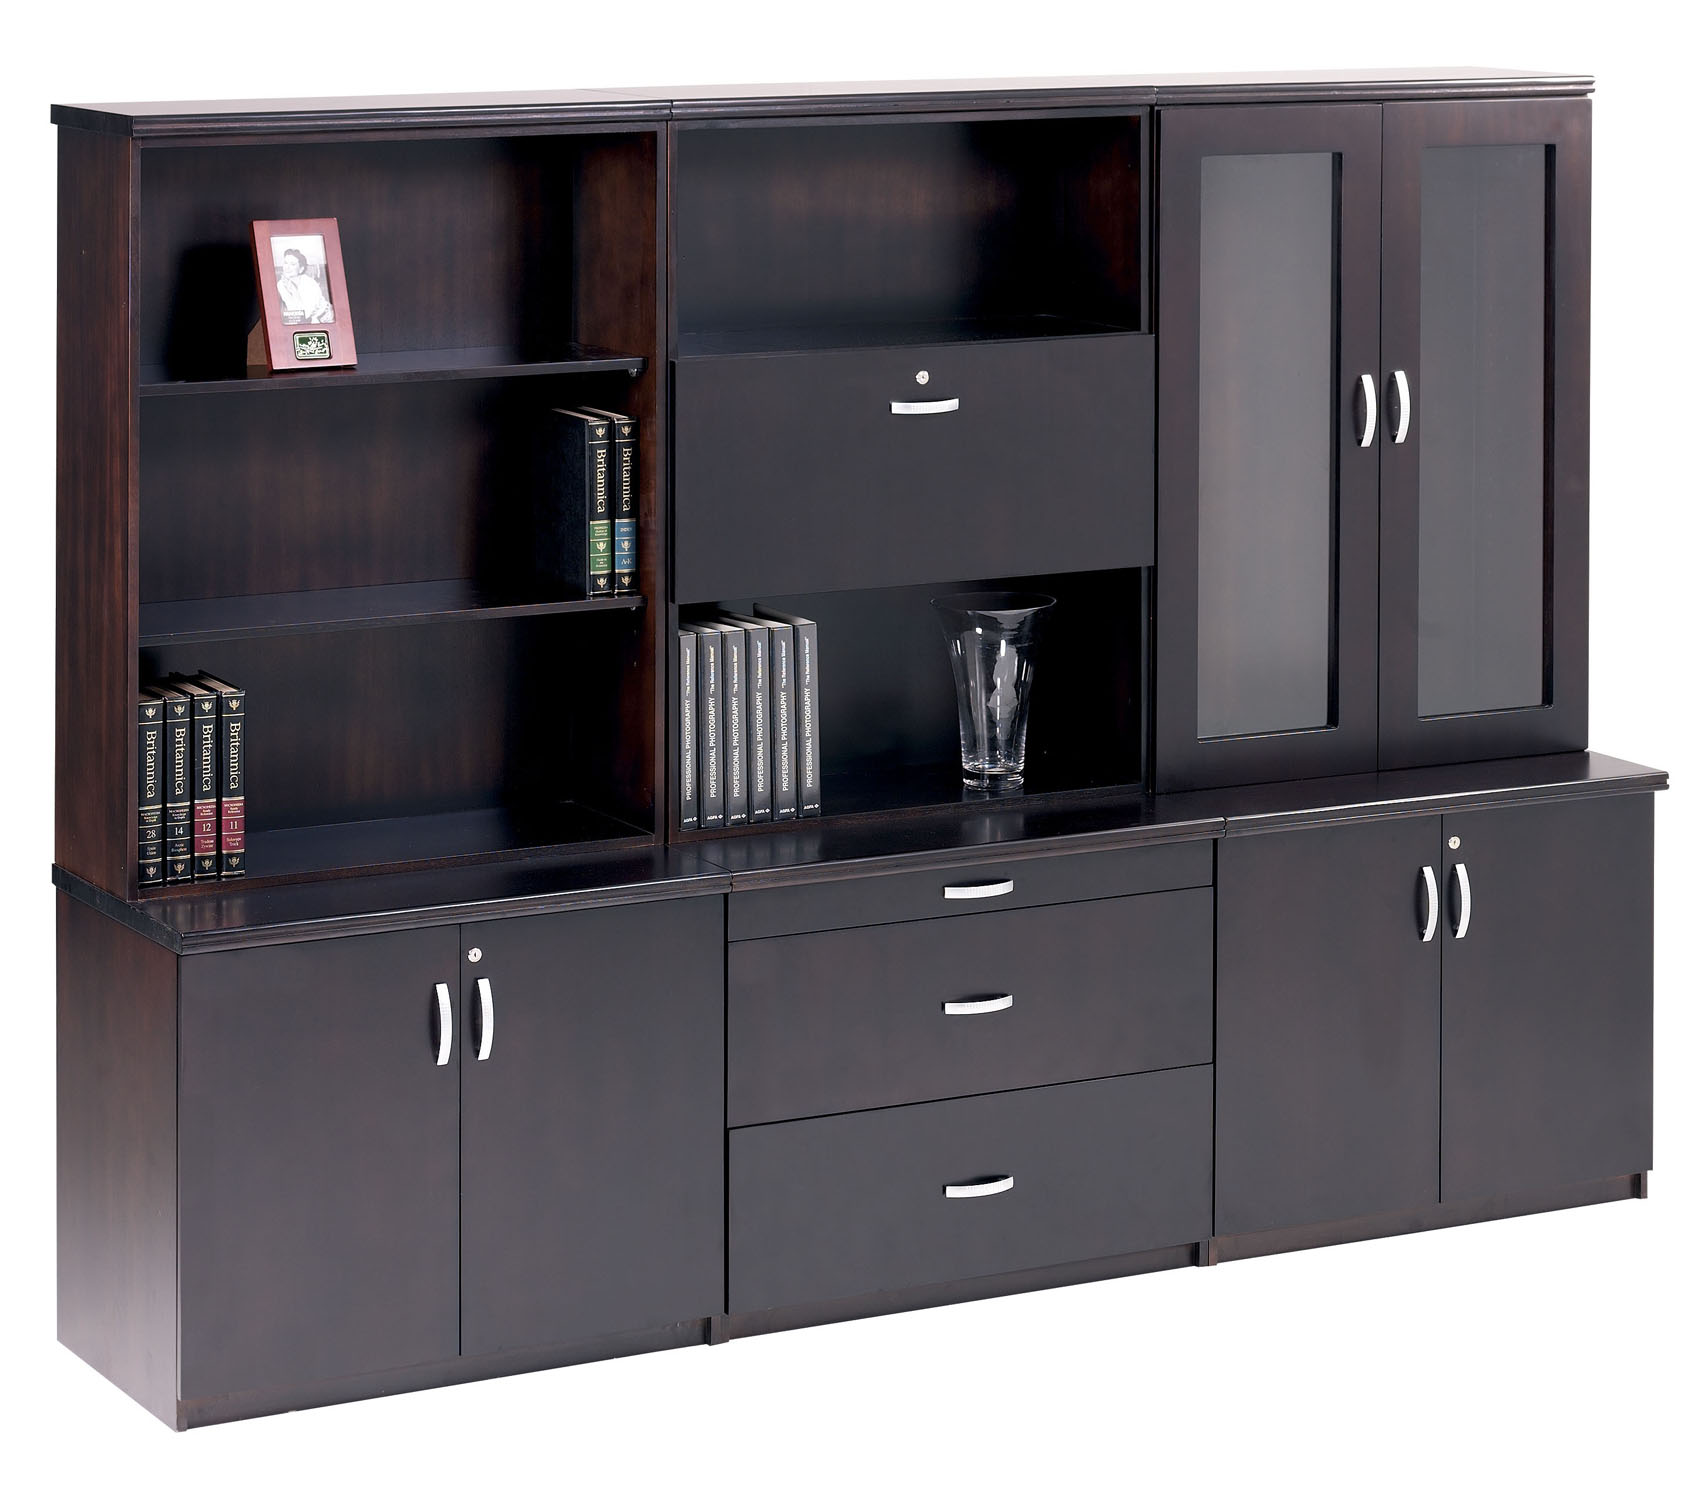 Quantum Office Furniture Office Furniture Suppliers  : Boston Wall Unit from www.quantumoffice.co.za size 1701 x 1487 jpeg 222kB